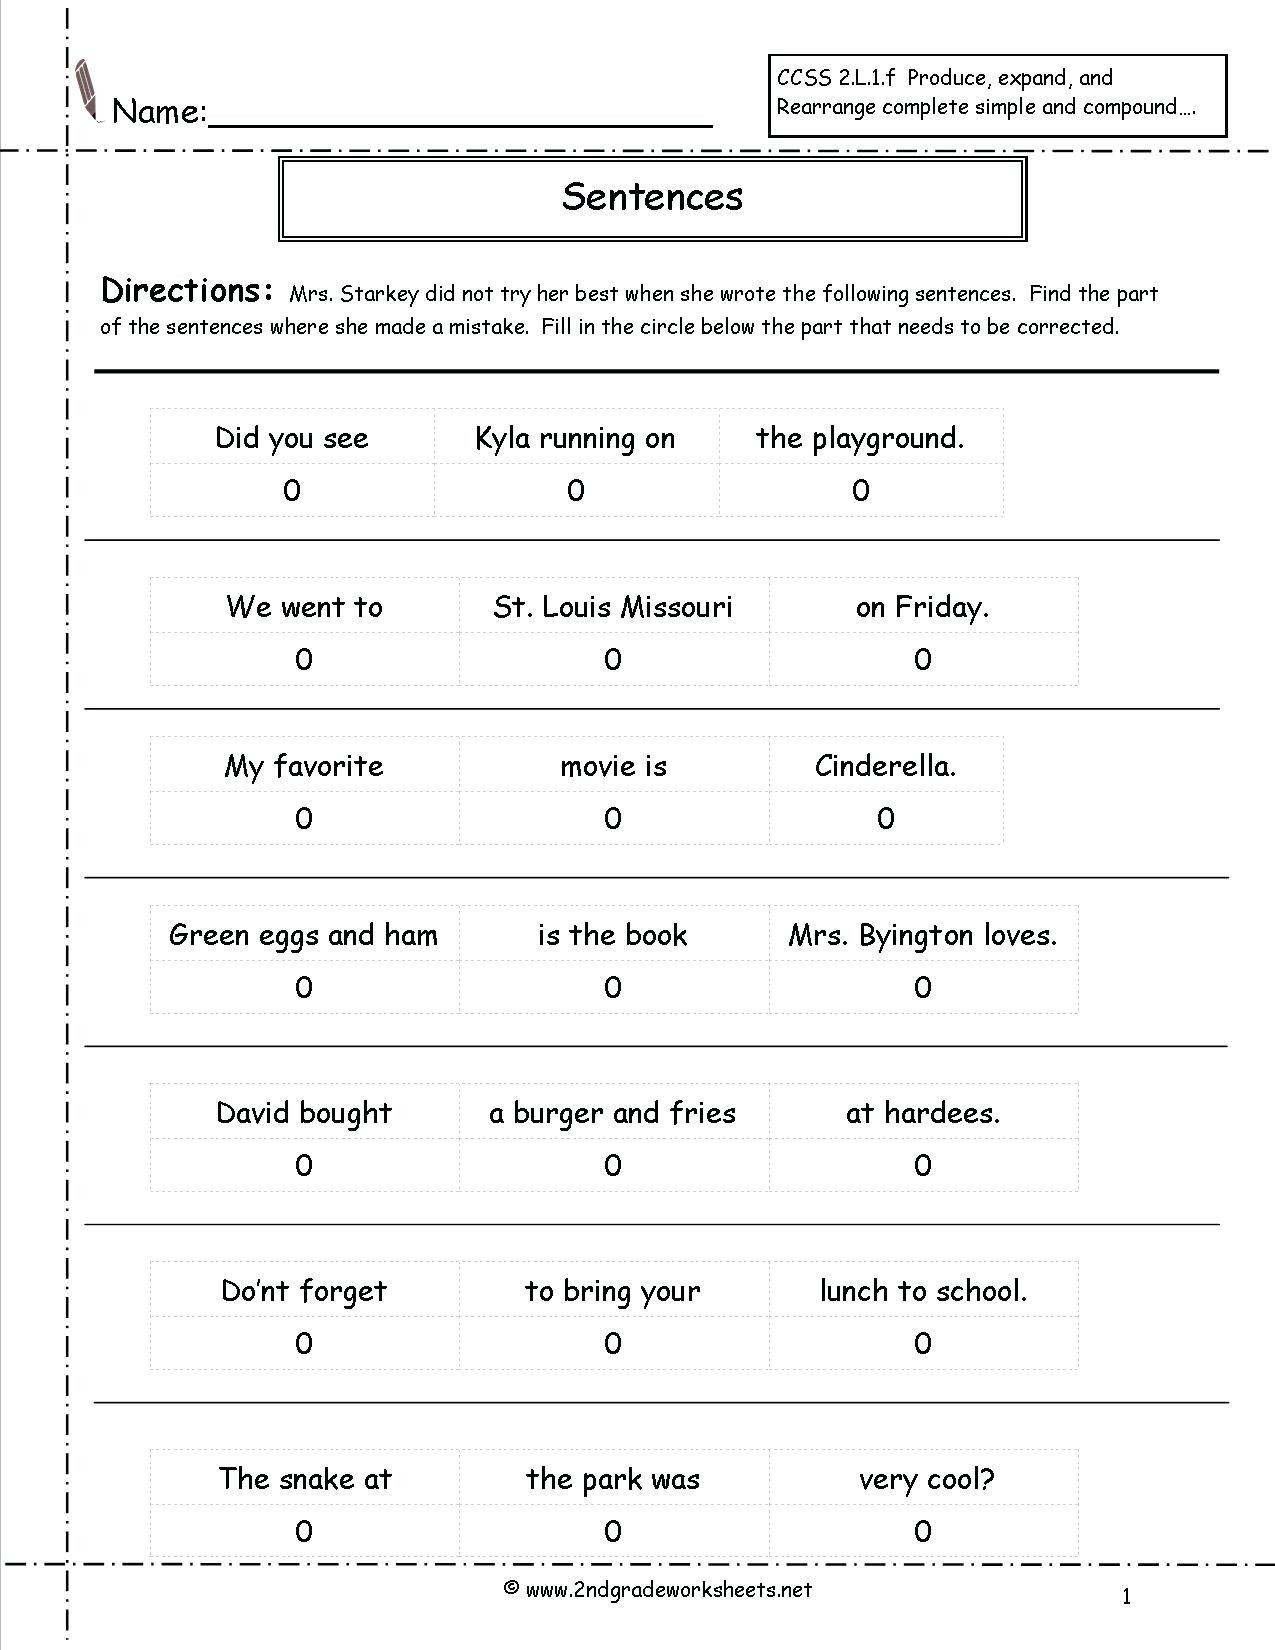 Complete Sentences Worksheets 4th Grade Types Sentences Worksheets to Download Types Of